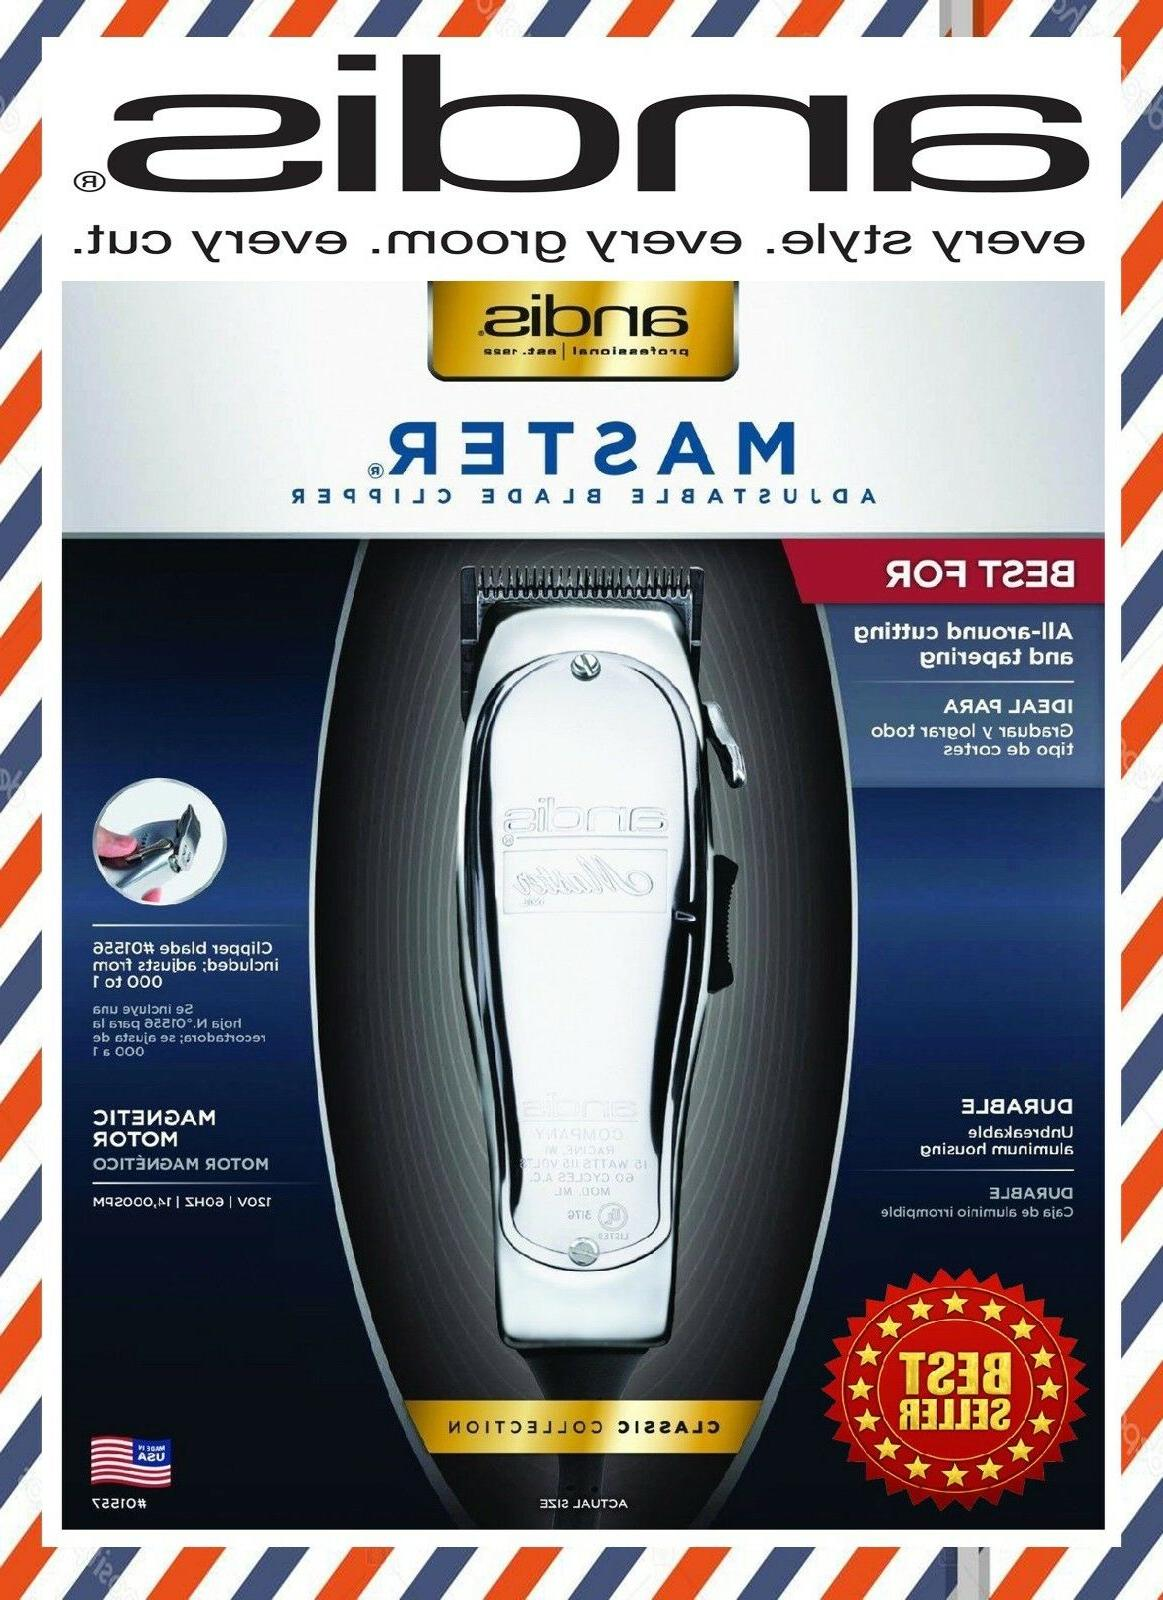 new 01557 master hair clipper